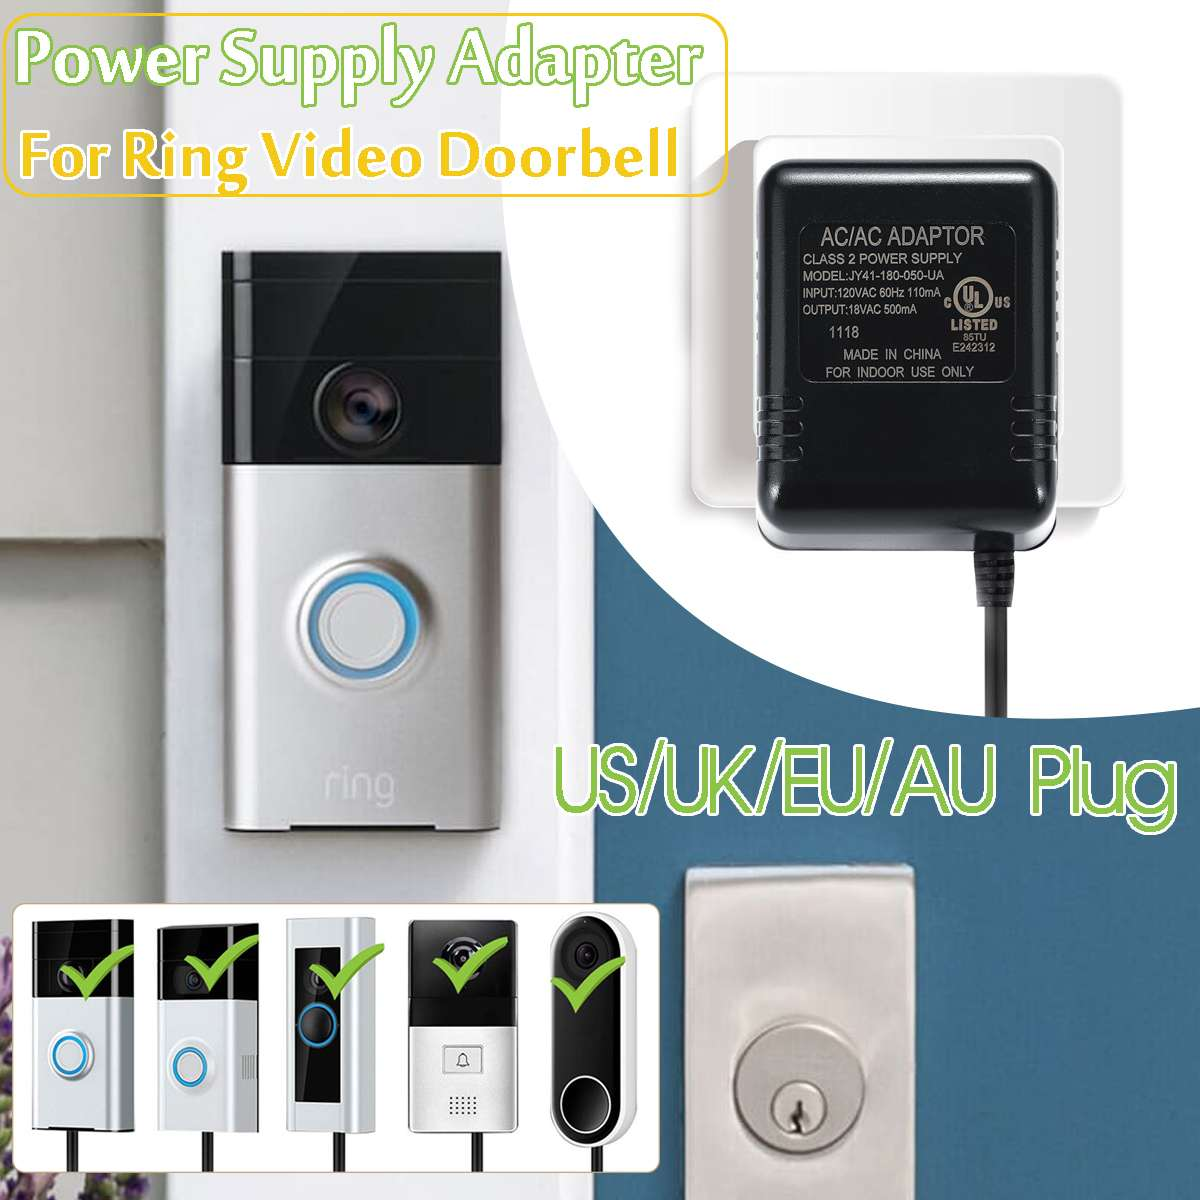 US/UK/EU/AU 8M Wifi Doorbell Camera Power Adapter for IP Video Intercom  Ring Wireless Doorbell 110V-240V AC 18V Transformer